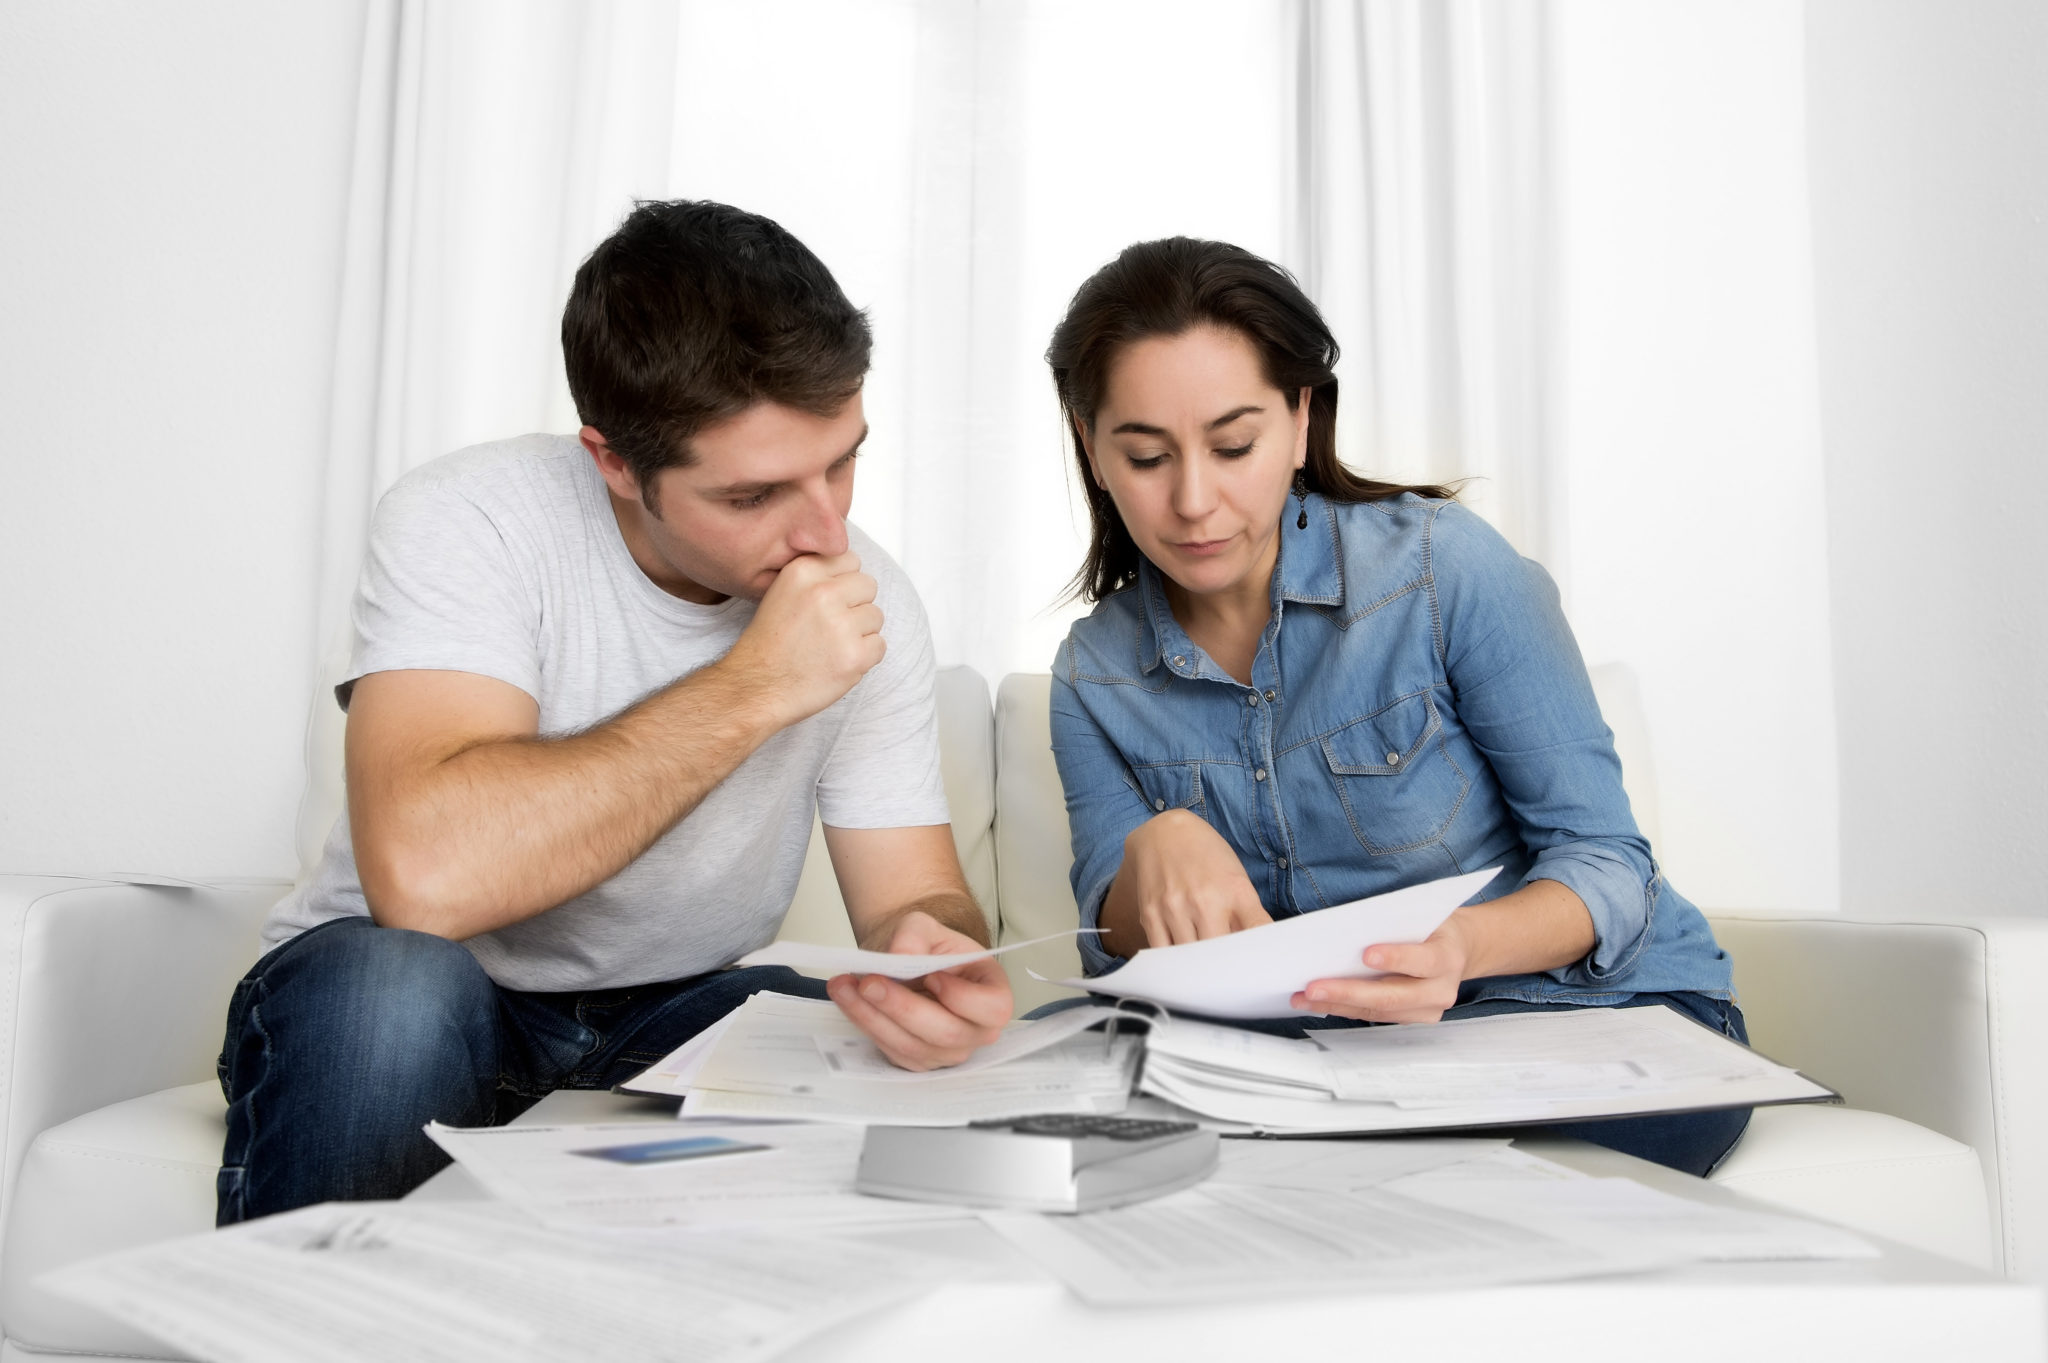 young couple stressing over bad financial situation